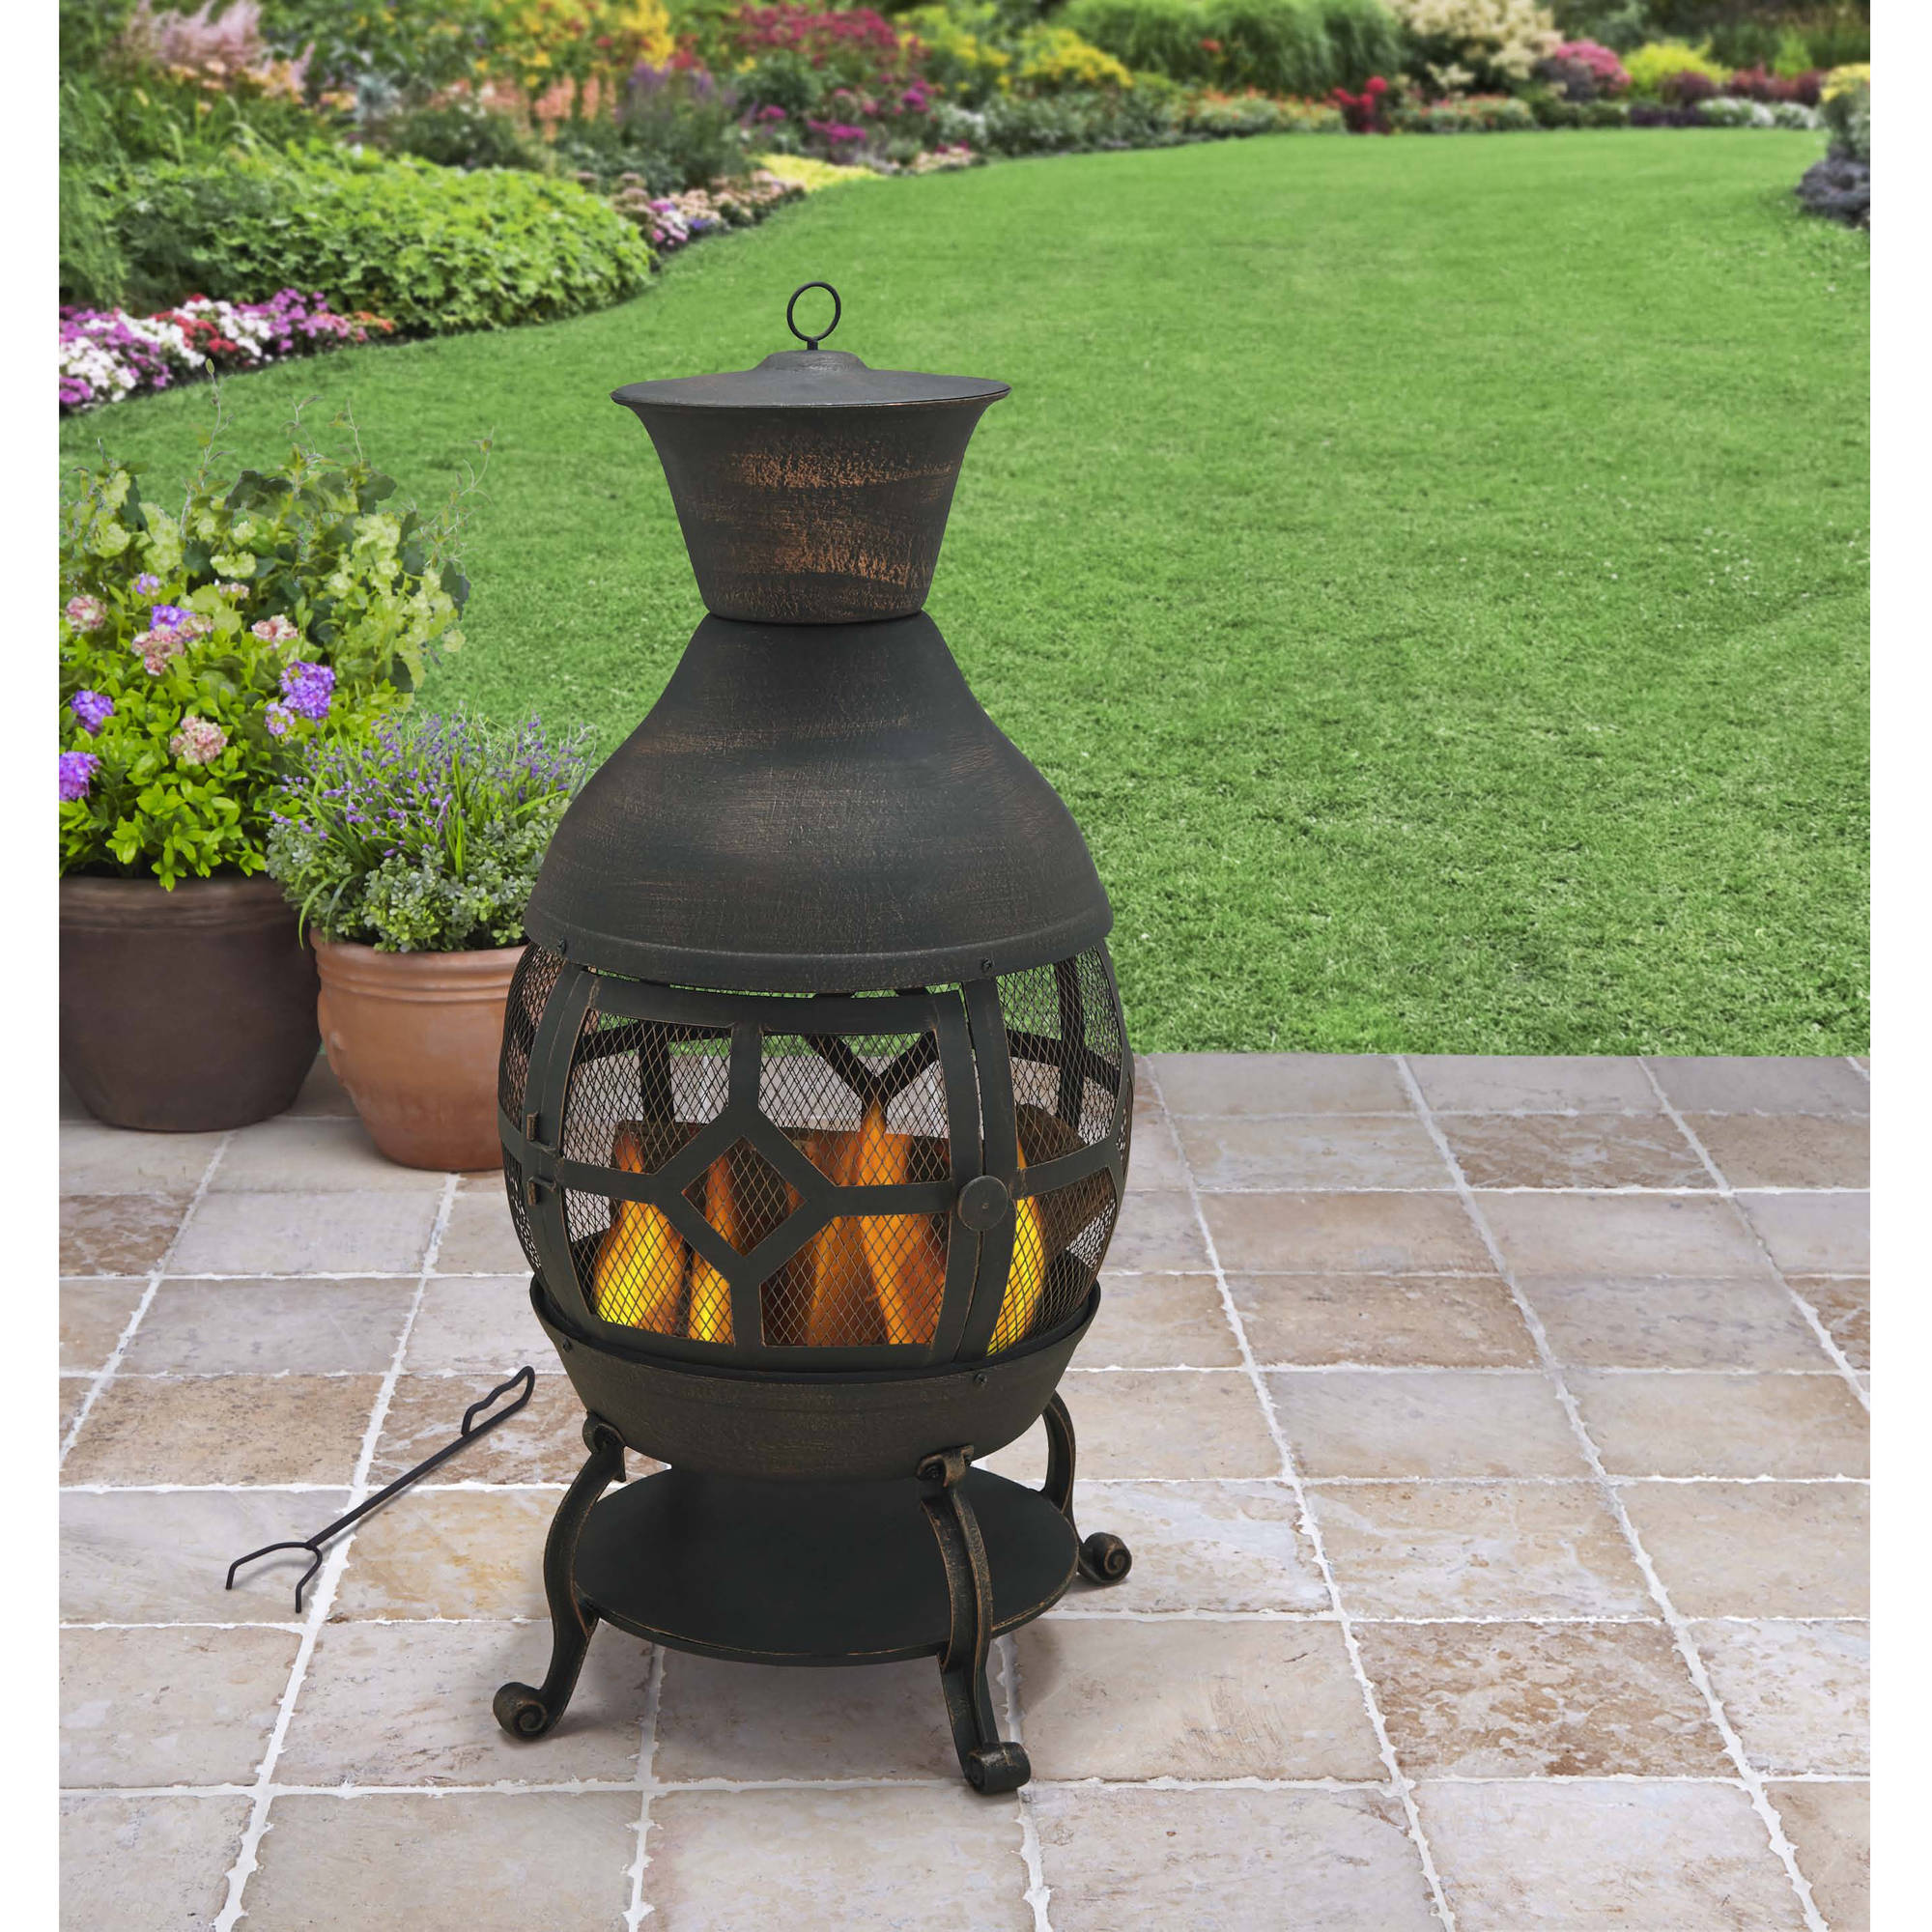 Better Homes and Gardens Cast Iron Chiminea, Antique Bronze by